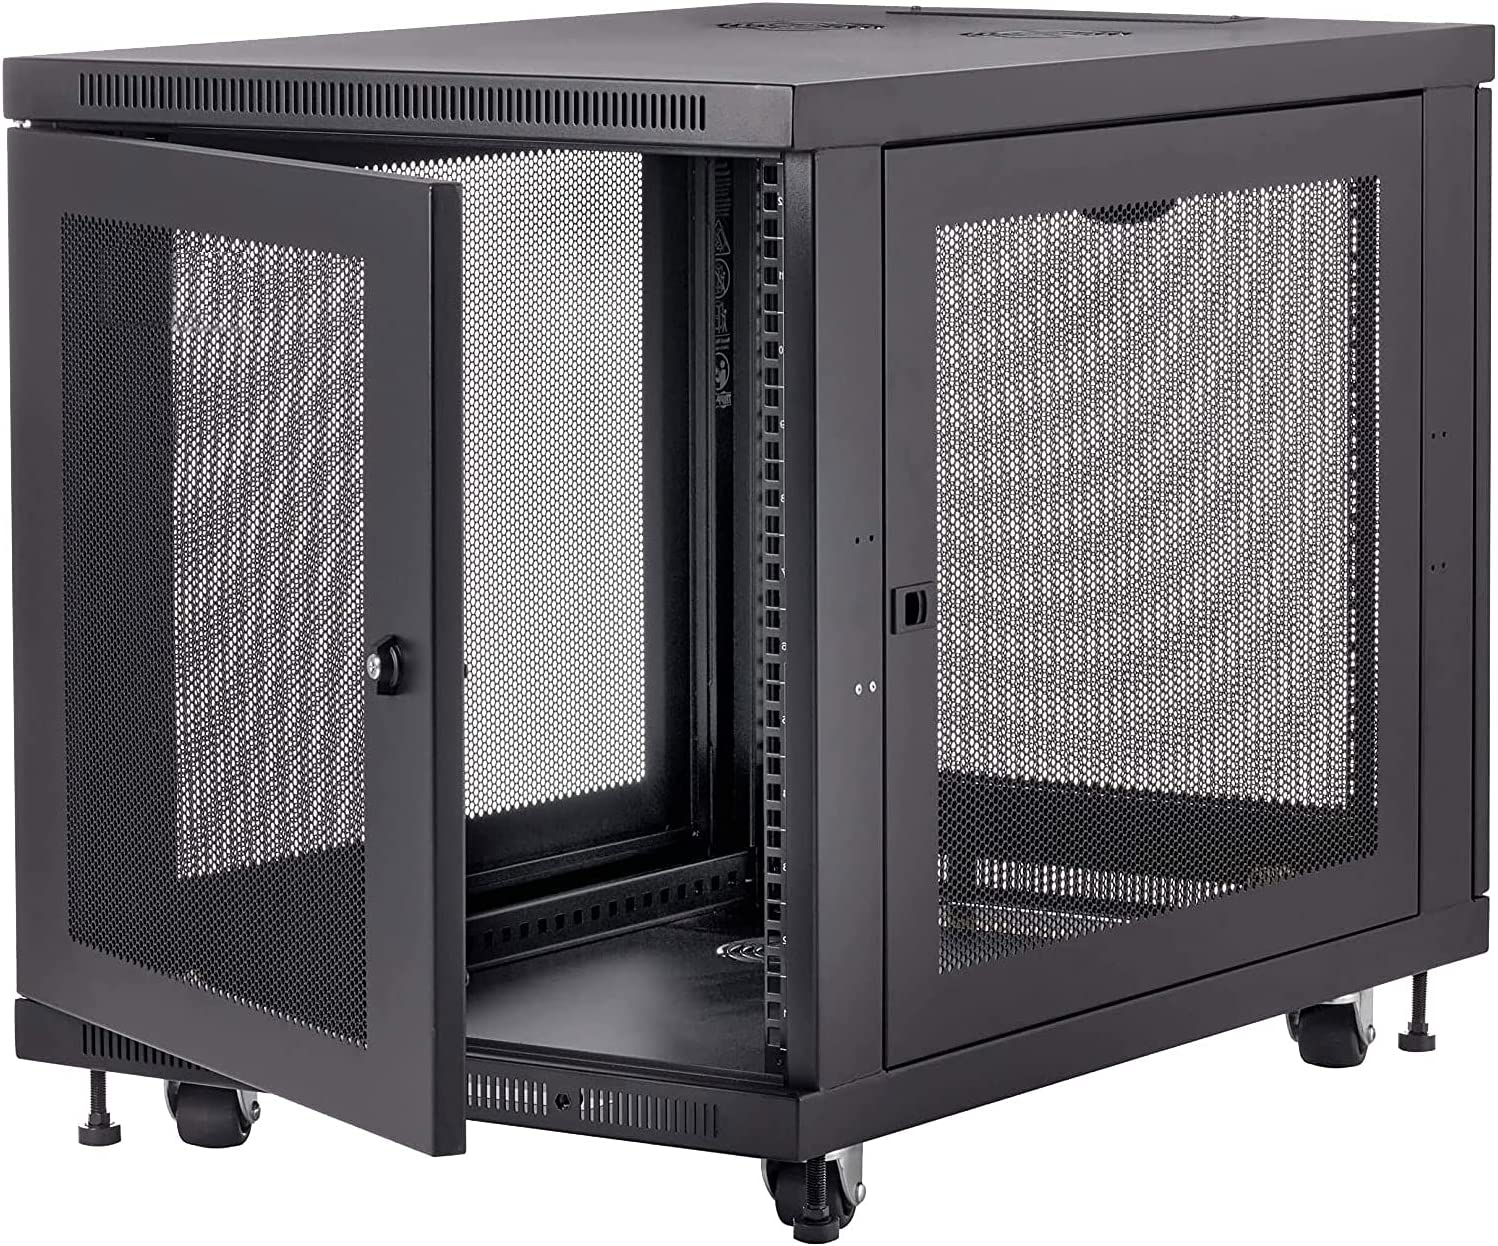 FerruNet 12U Rack Enclosure Server Cabinet,Black,casters and Leveling feet,Apply to Network Wiring Room,Computer Room,Data Room,Control Center,Home,Office,etc.